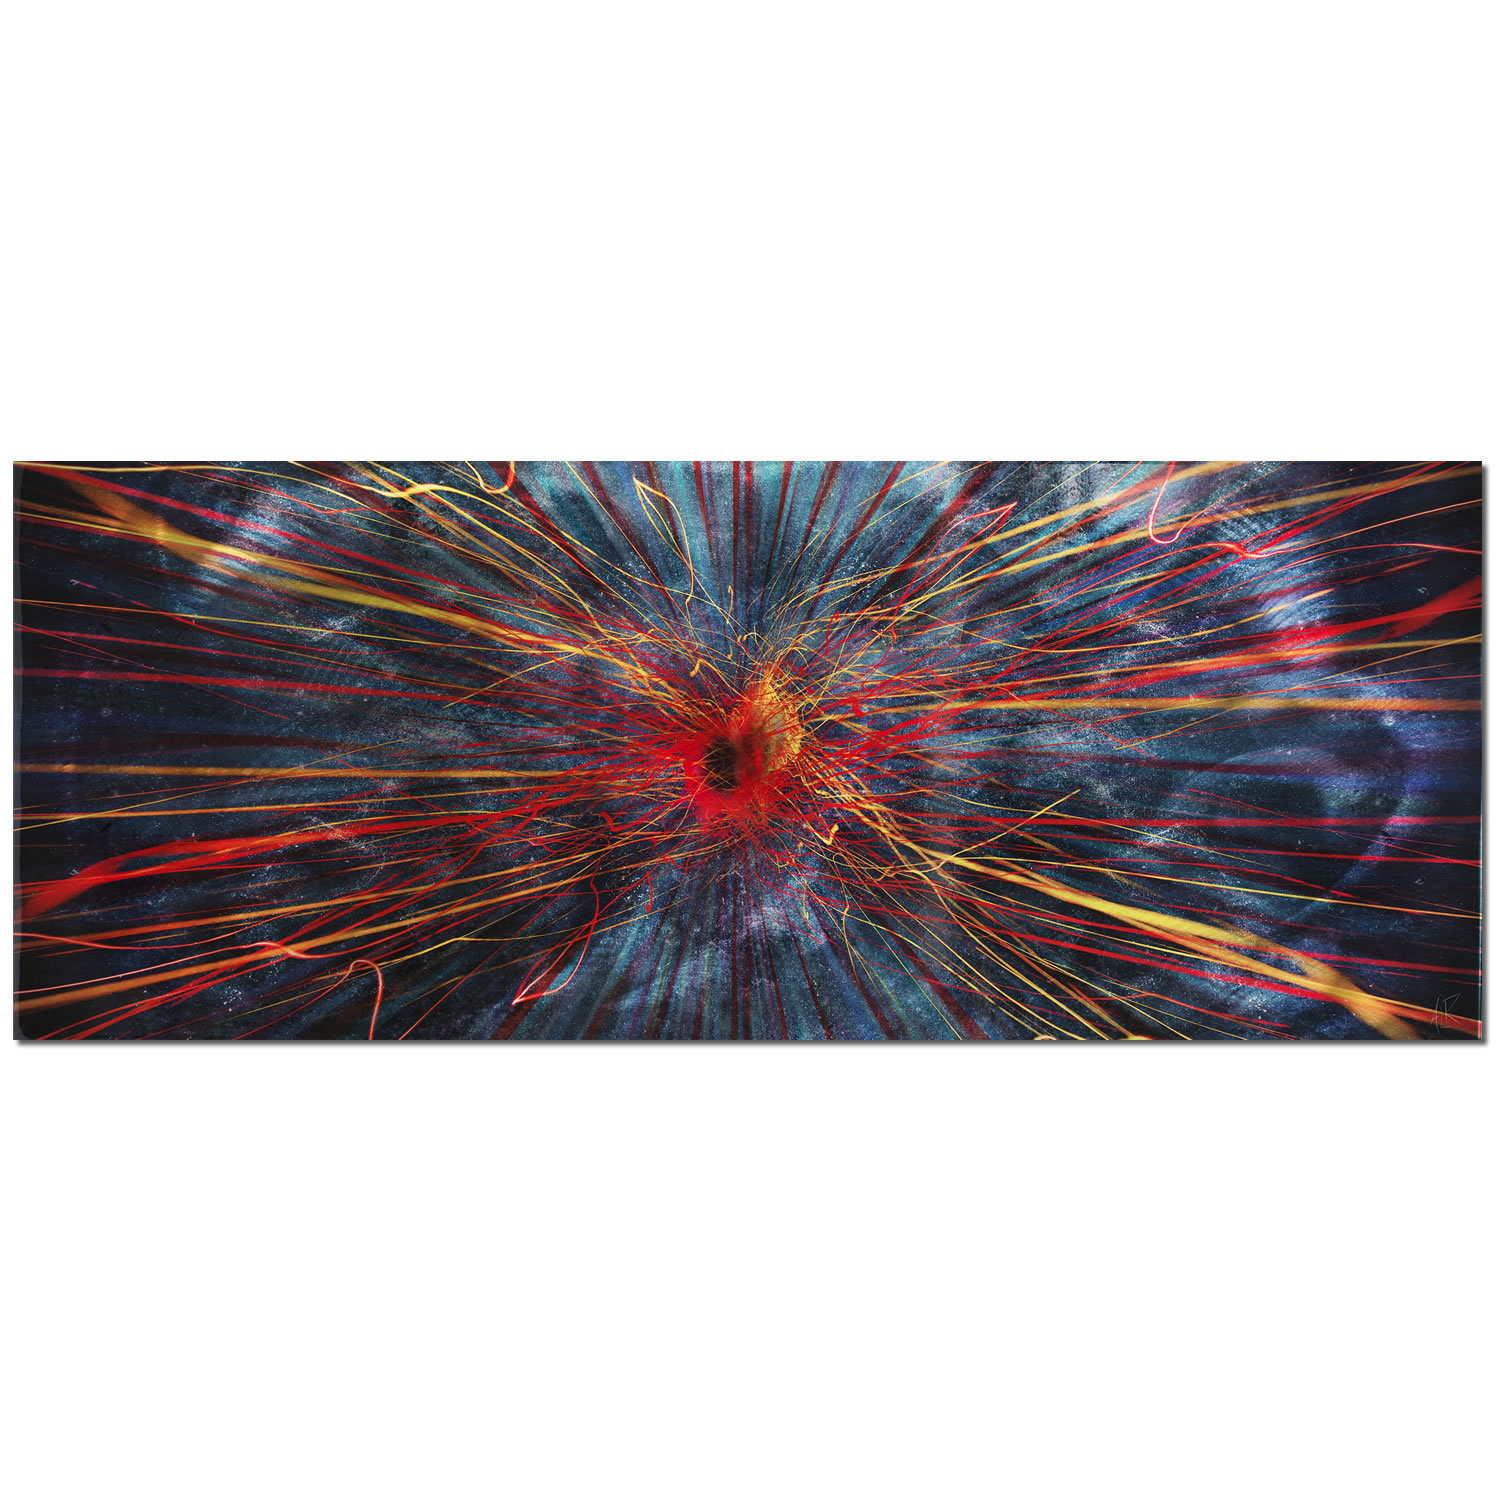 Abstract Painting 'Implosion' - 48x19in. - Large Abstract Art, Charcoal w/ Red & Blue Streaks - Dark Modern Art - Contemporary Wall Art 51f762613337d063120003e1